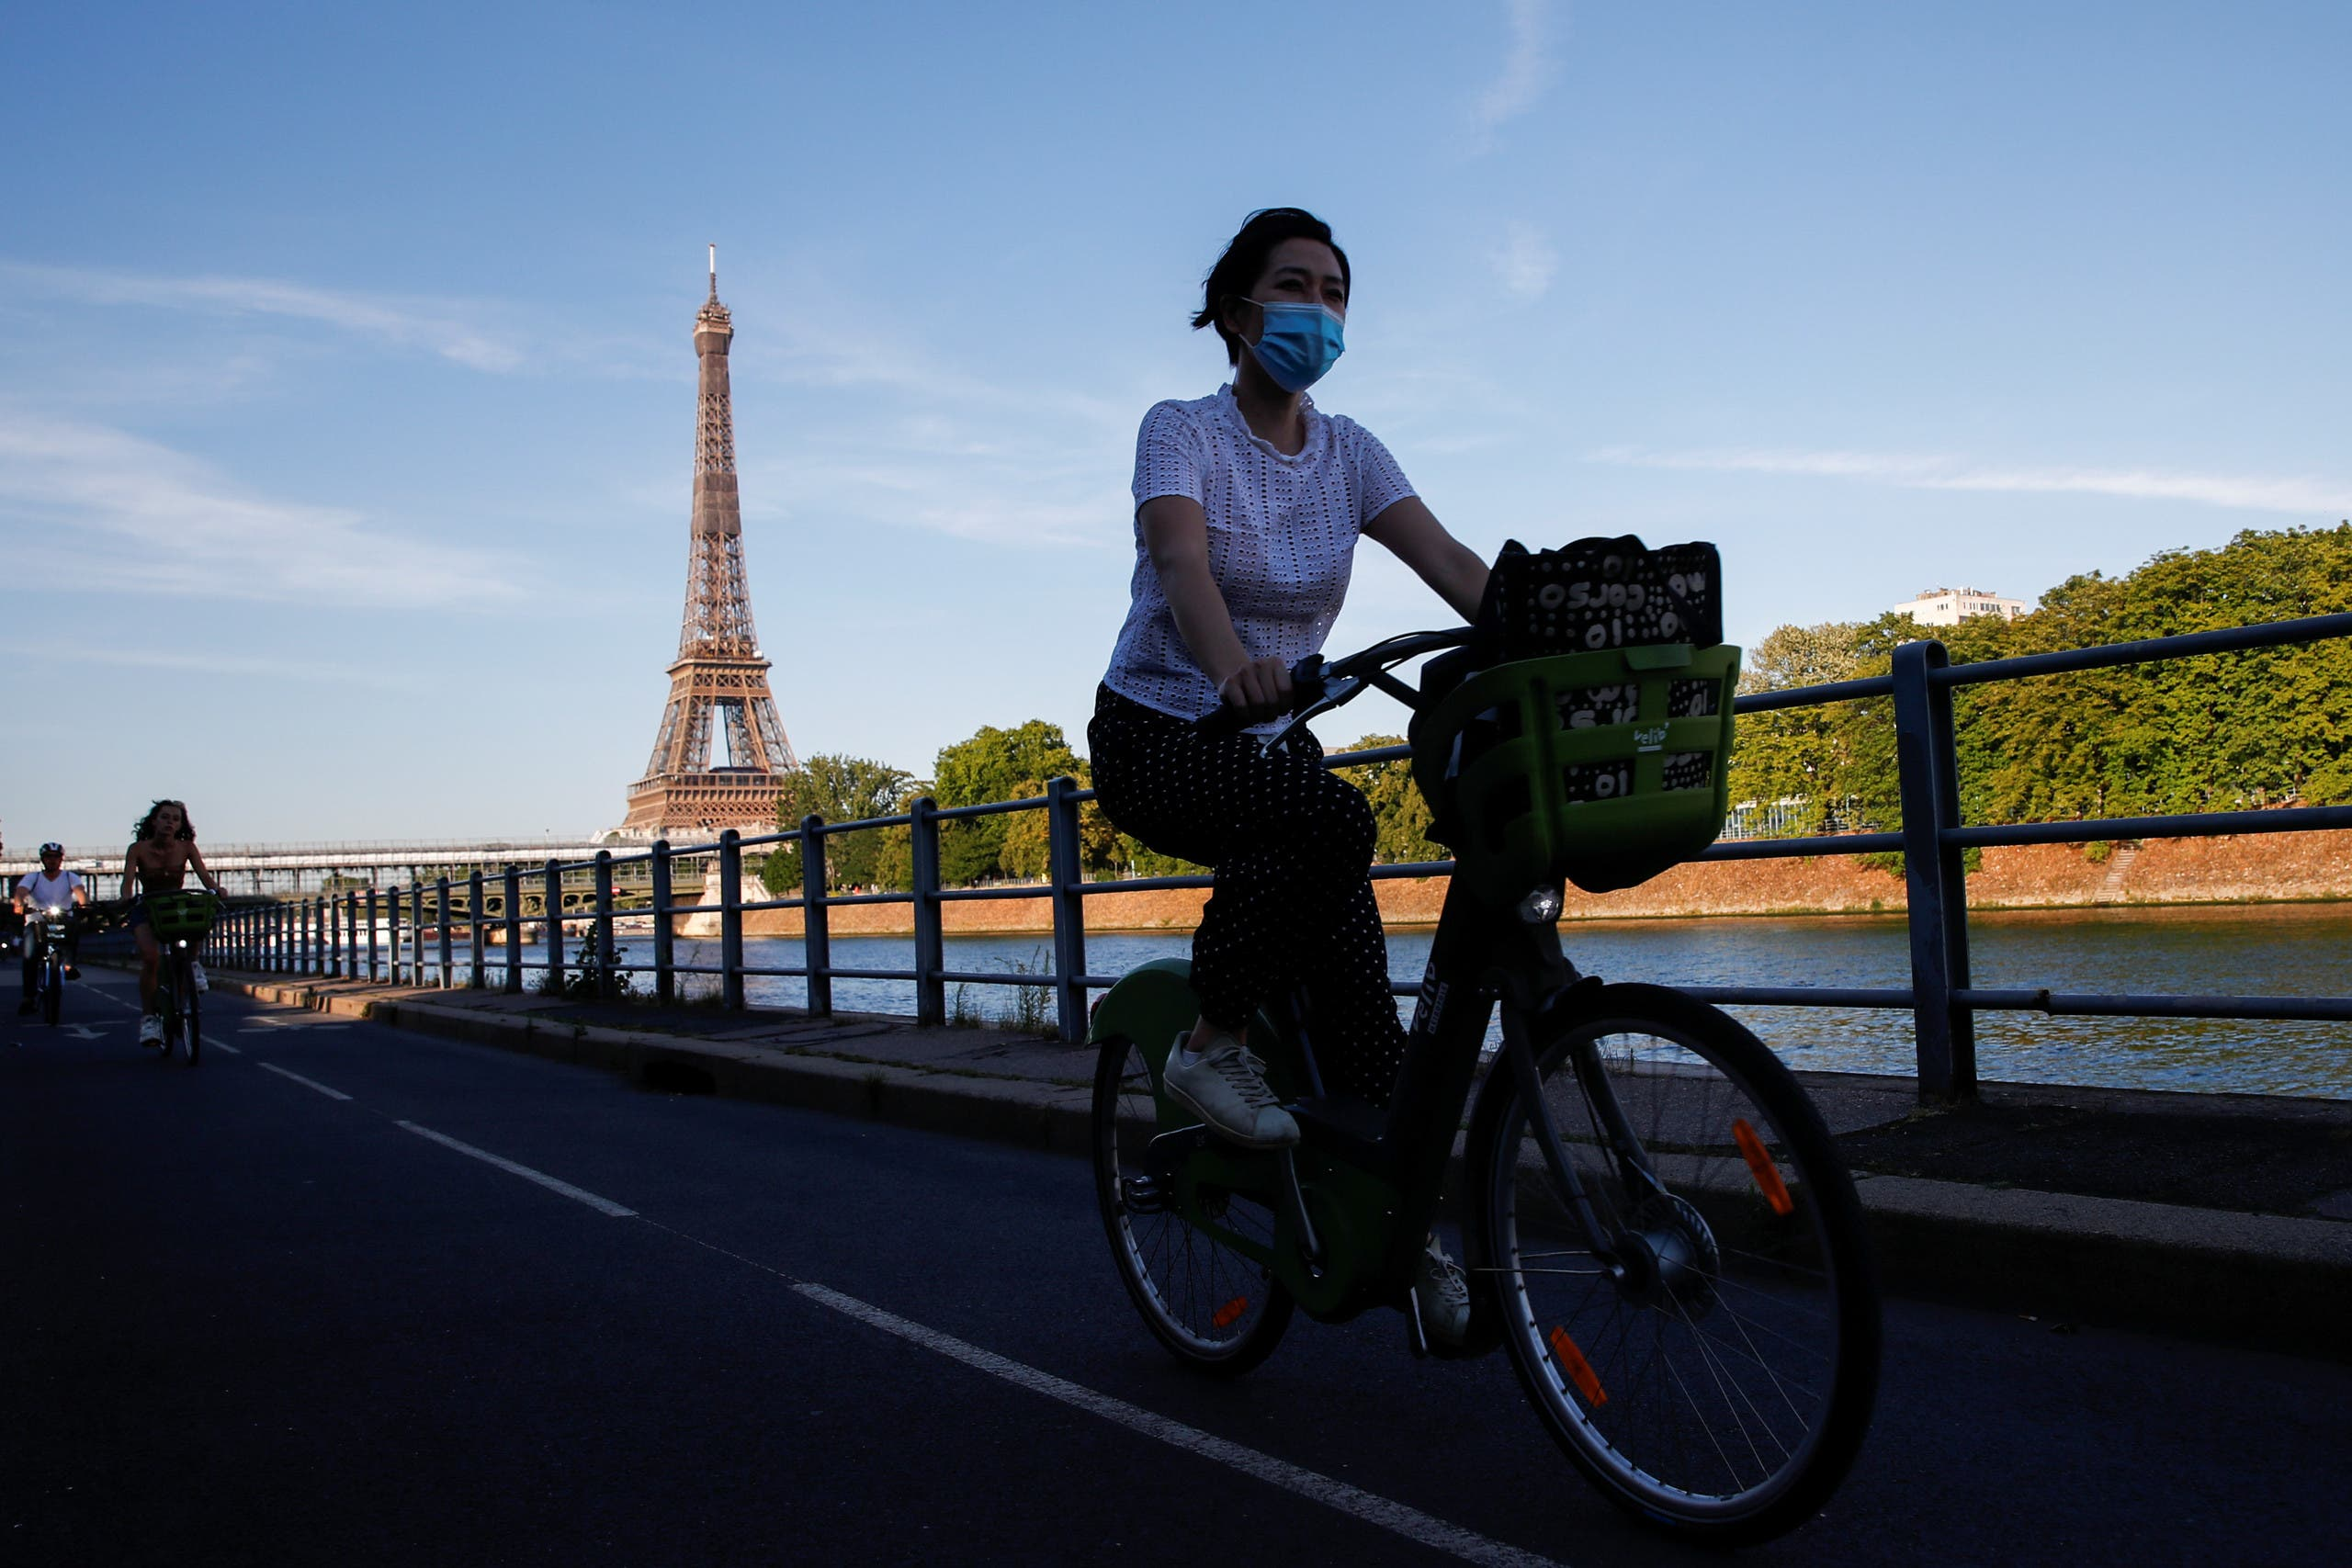 A woman wearing a protective mask rides a Velib bicycle-sharing service near the Eiffel Tower during a warm and sunny day in Paris as a heatwave hits France, June 24, 2020. (File photo: Reuters)